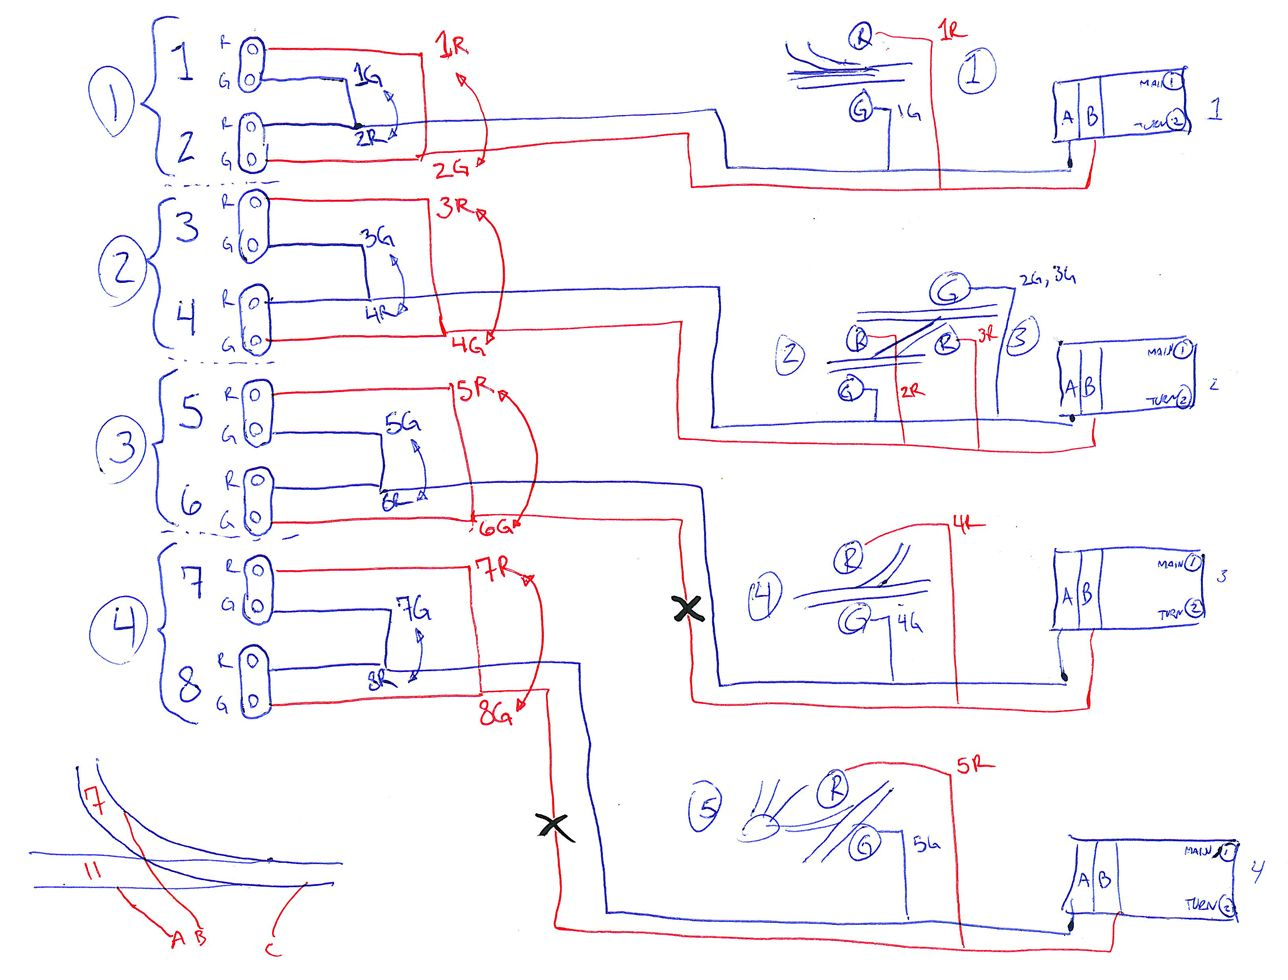 planning sketch depicting wiring for the trackside signals control panel model trains diagram [ 1288 x 980 Pixel ]